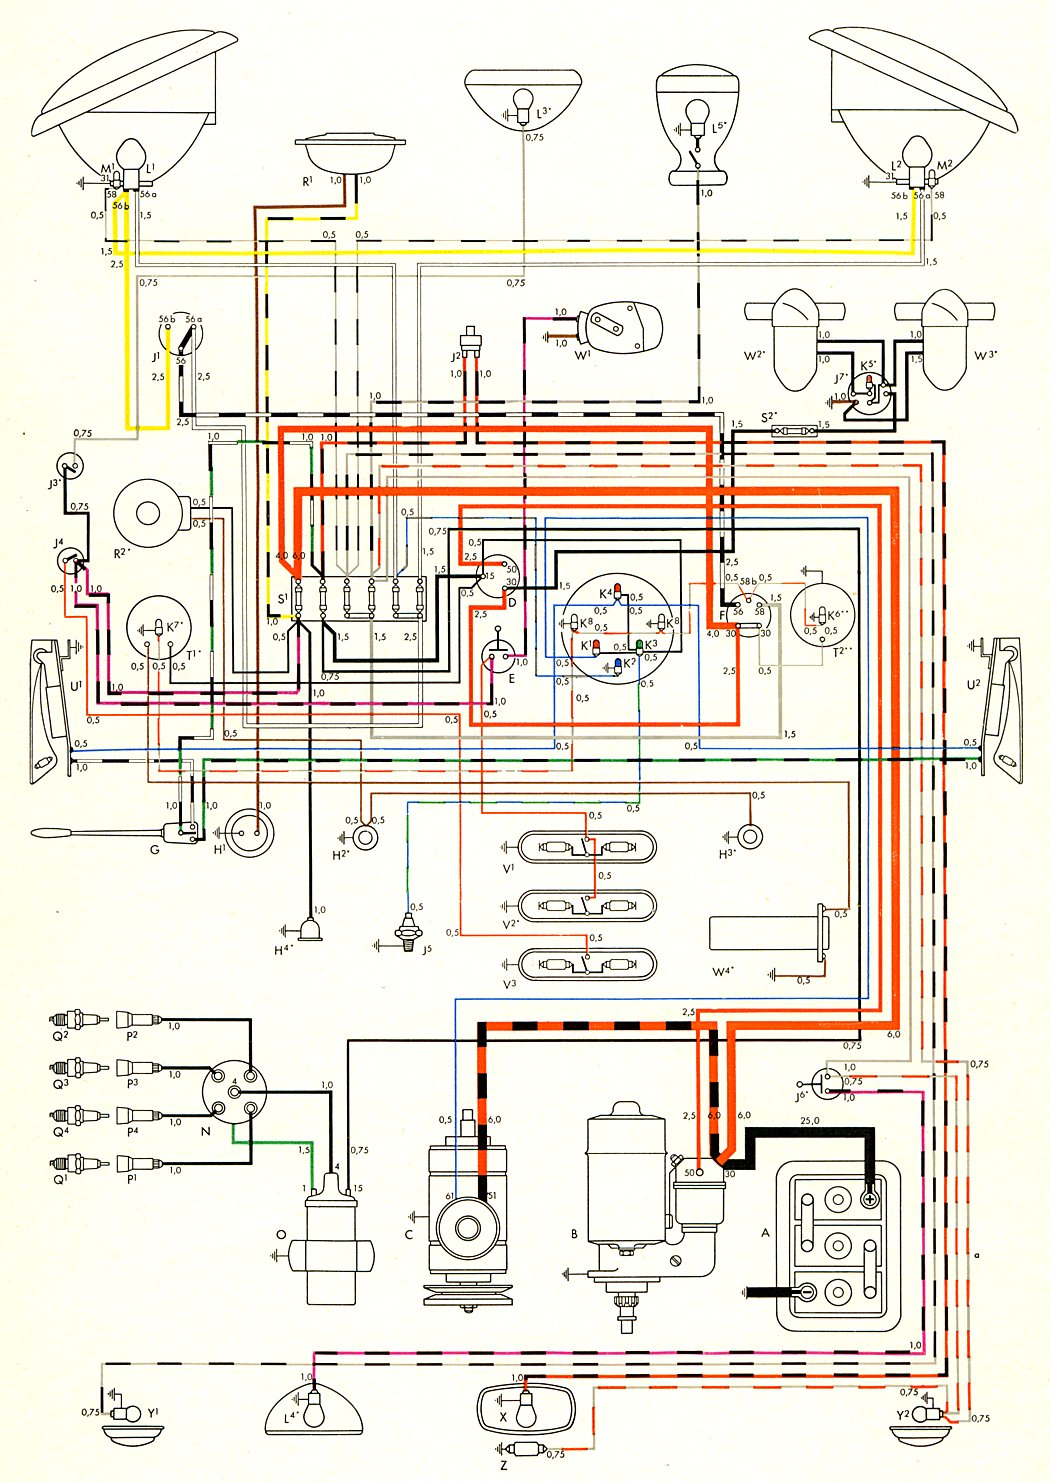 bus_nov57 thesamba com type 2 wiring diagrams can bus wiring diagram at soozxer.org